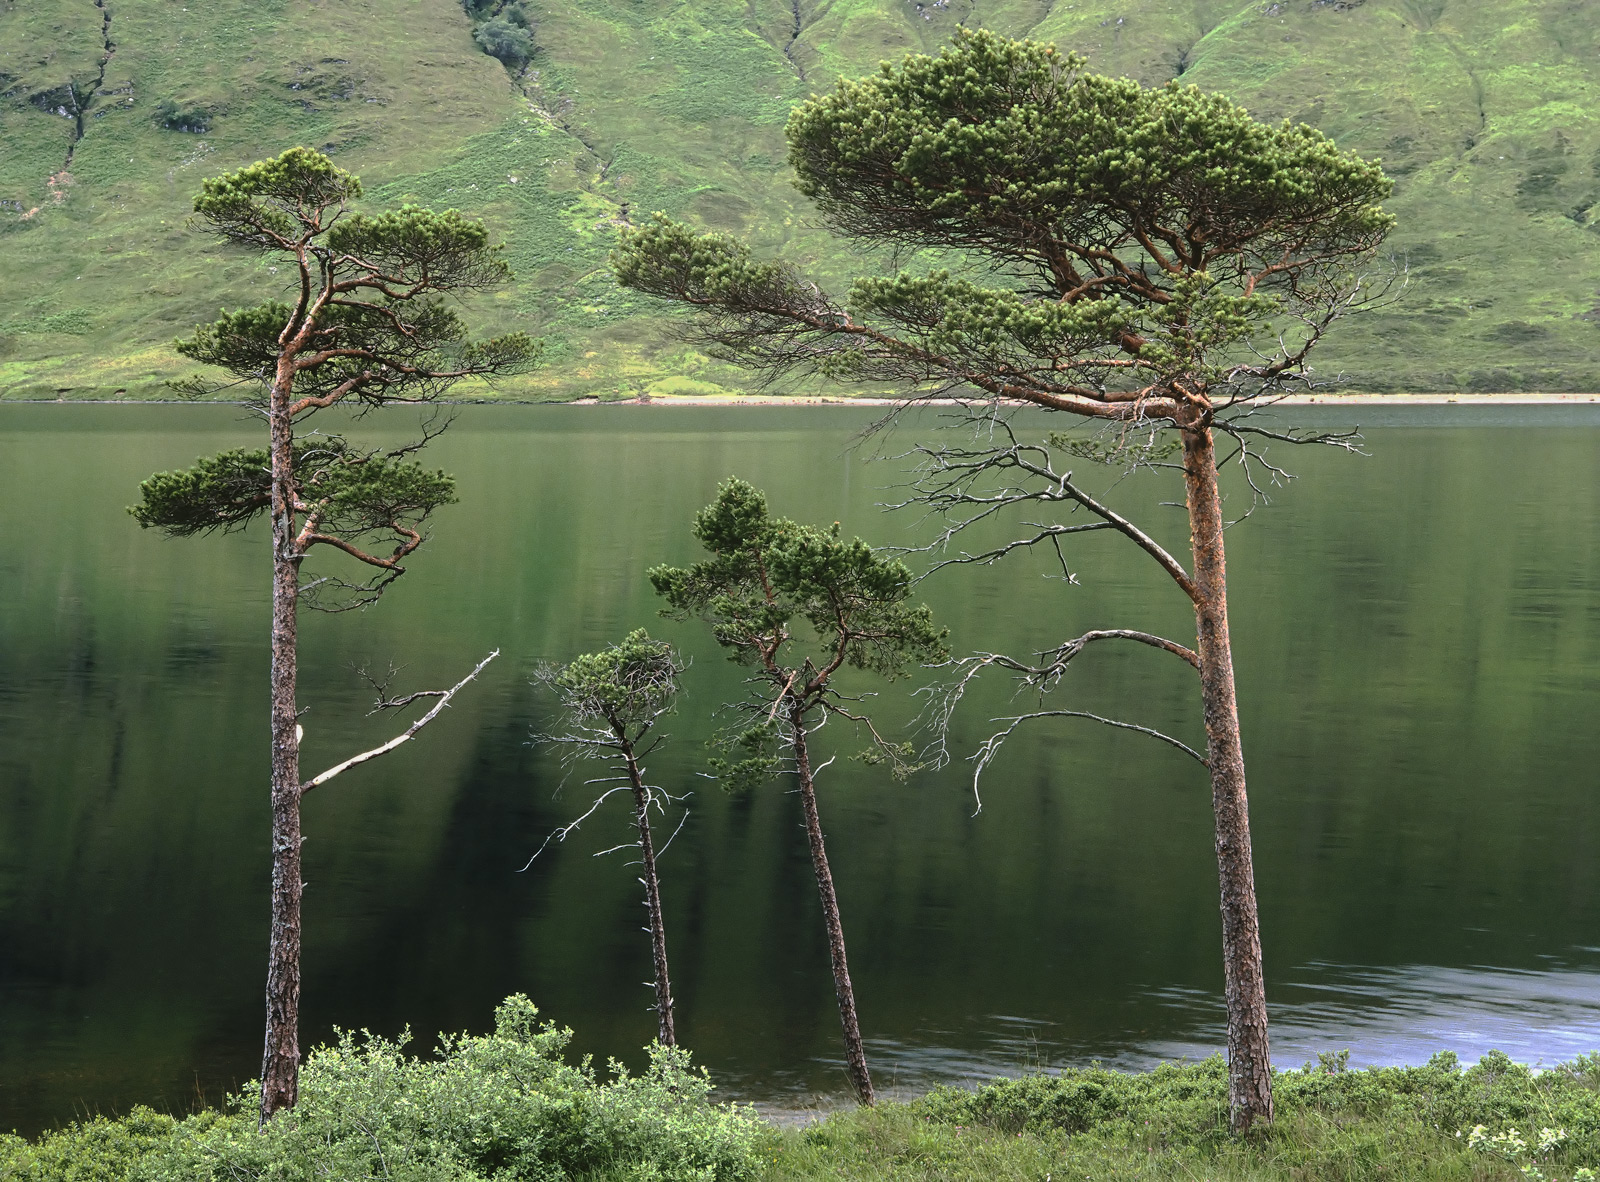 A family group of pine trees at the edge of Loch a Chroisg. Itsa place that generates superb reflections due to the...